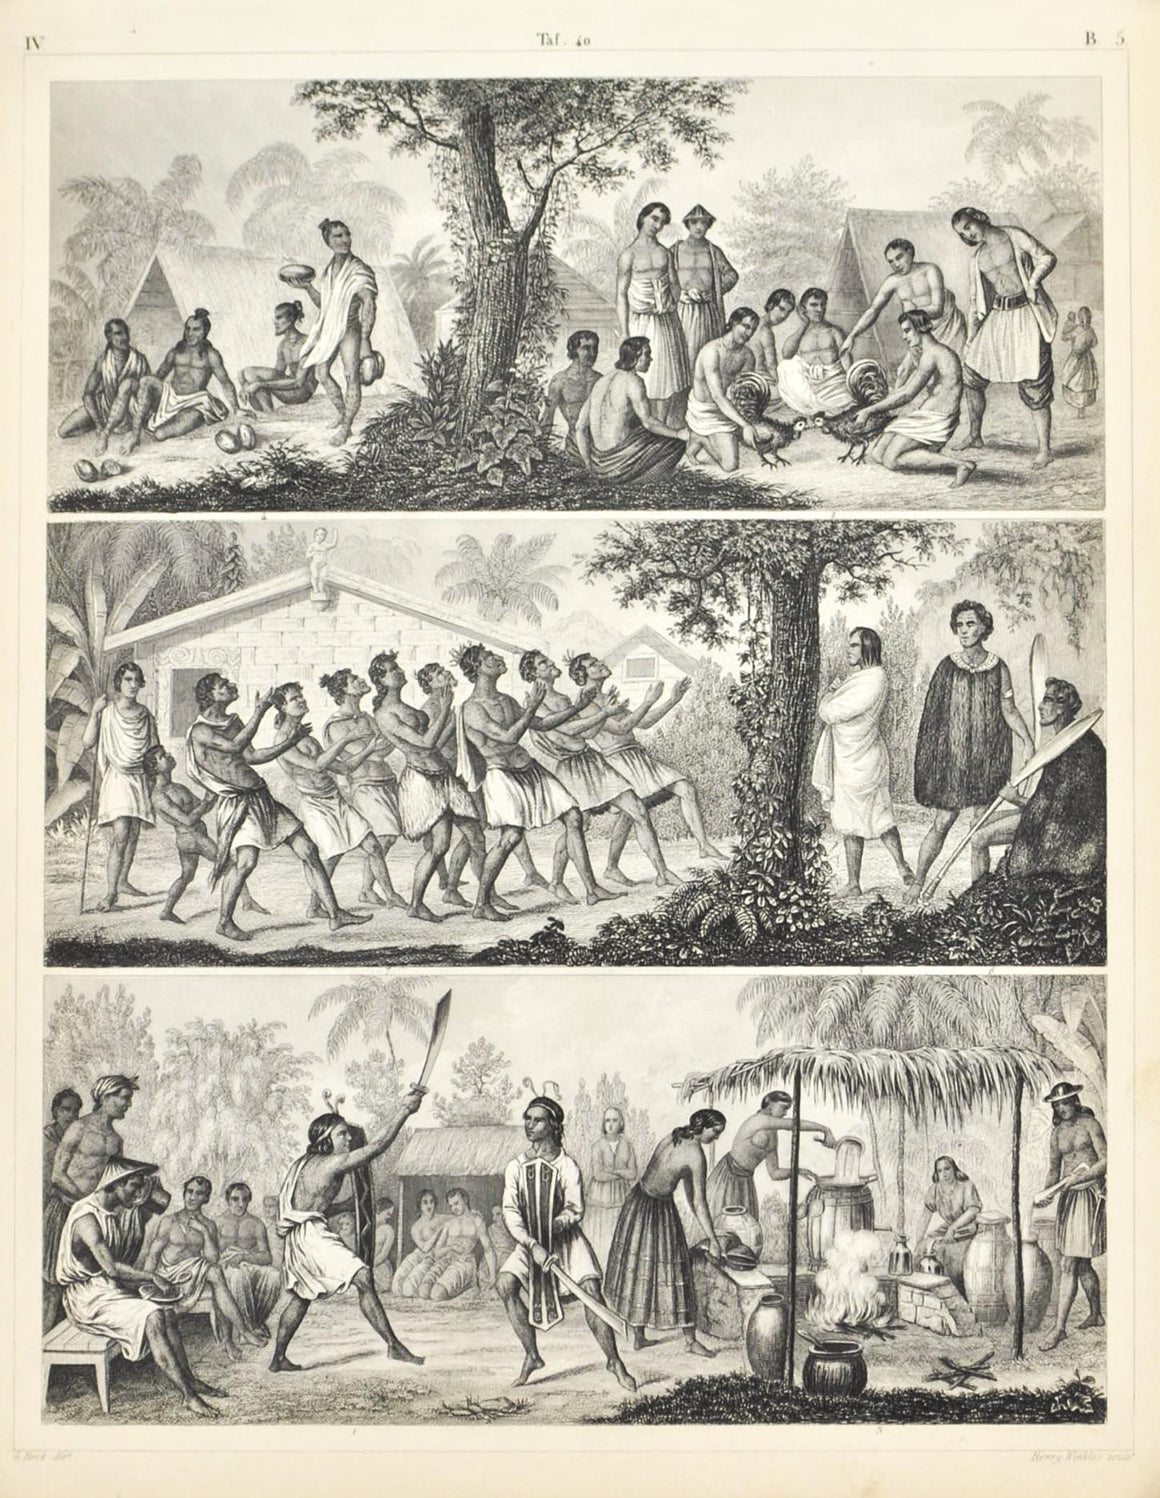 Booro Philippines Marian Caroline Islands Antique Print 1857